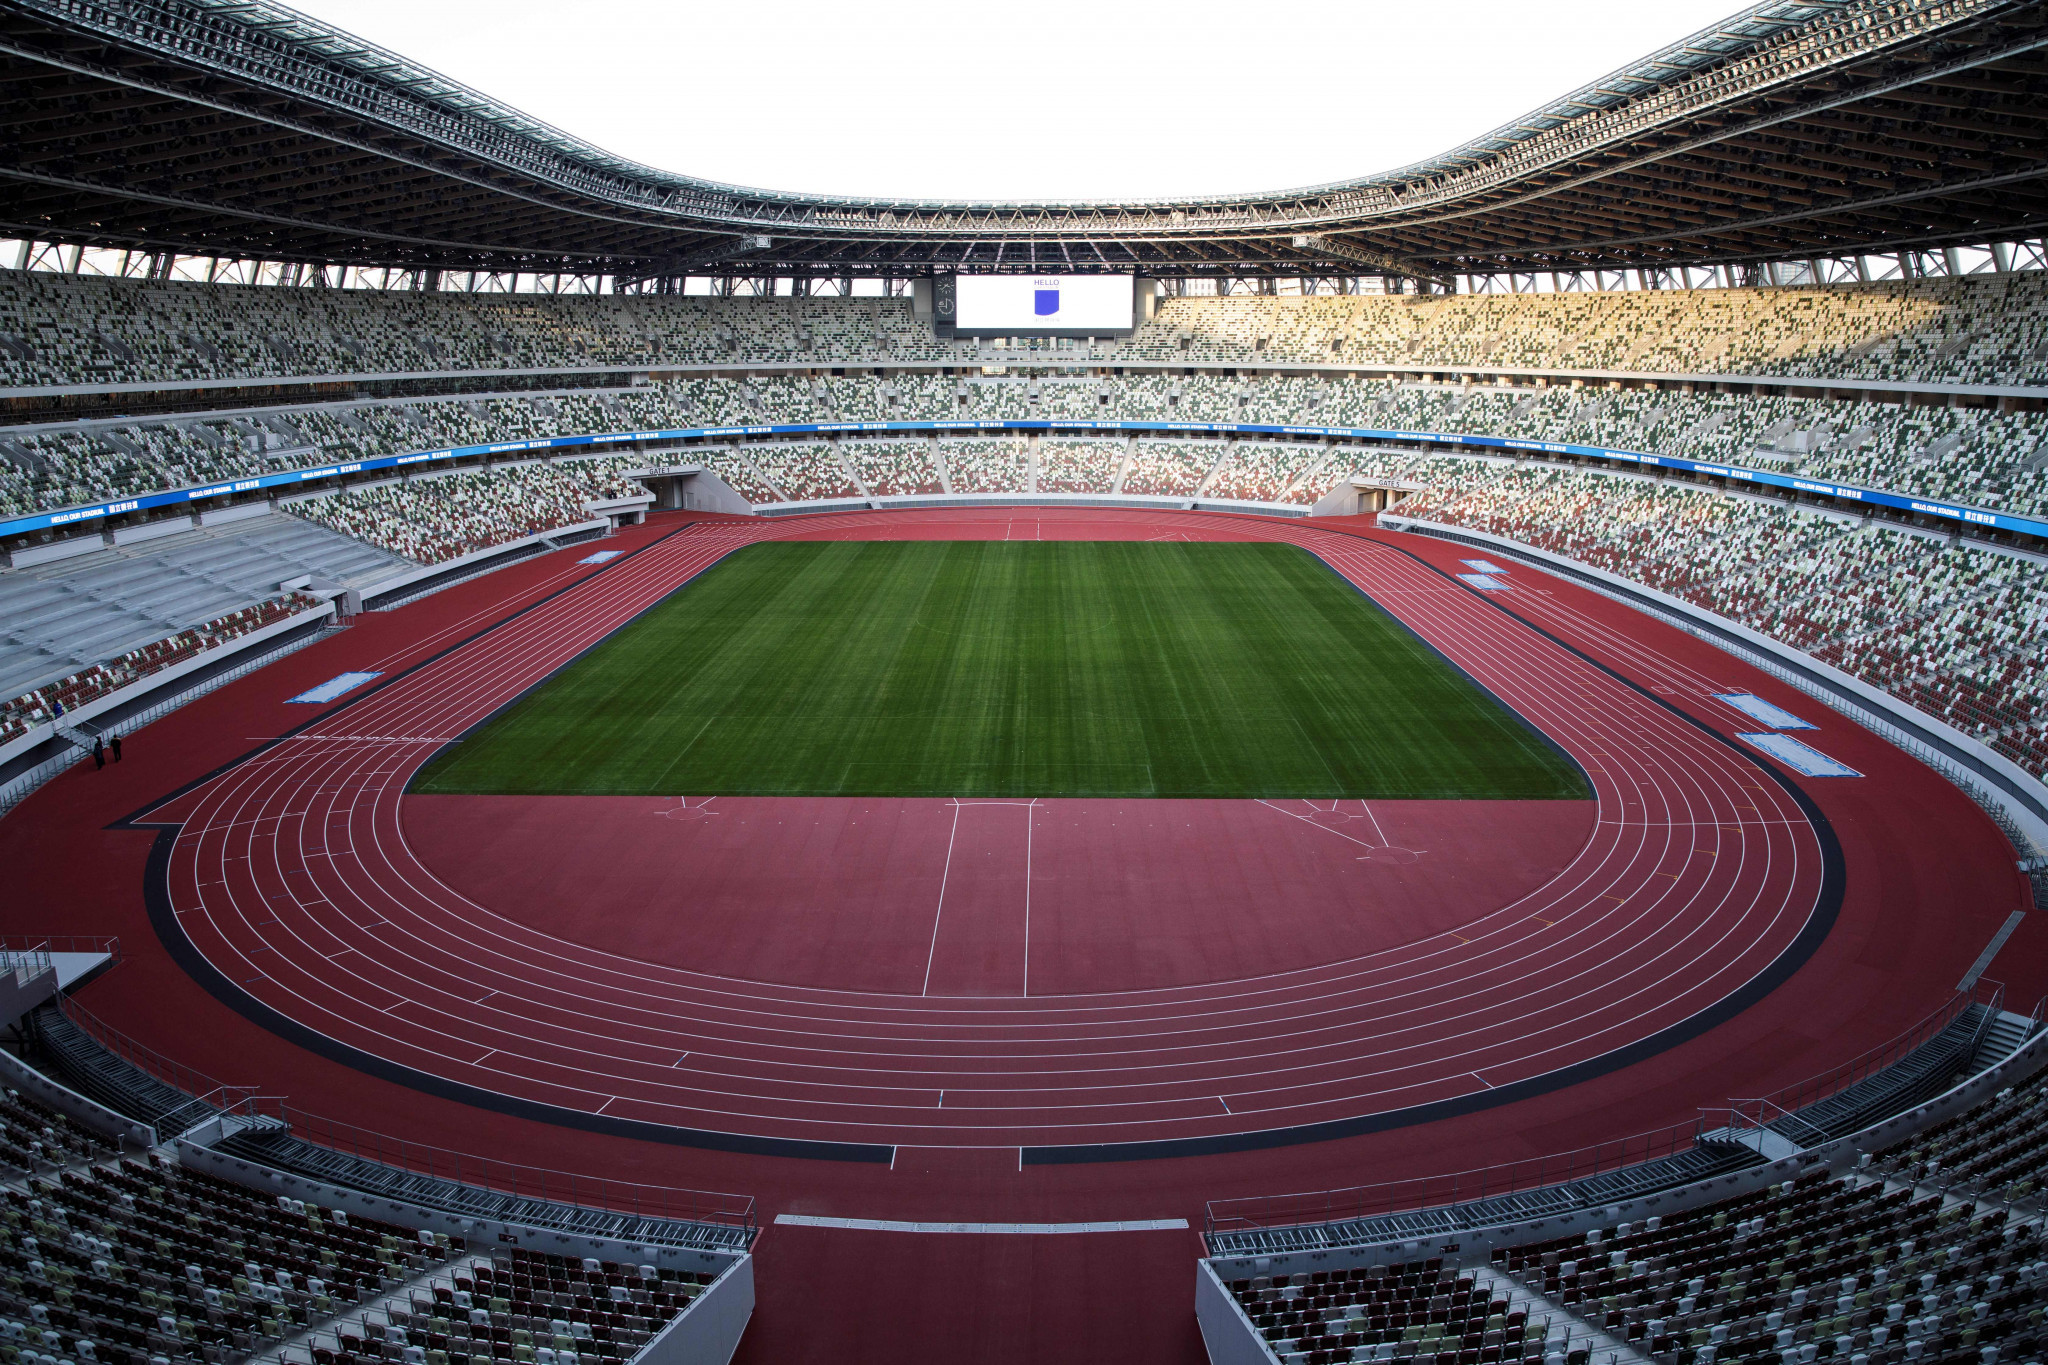 The stadium will be the centrepiece of next year's Olympic and Paralympic Games in Tokyo ©Getty Images